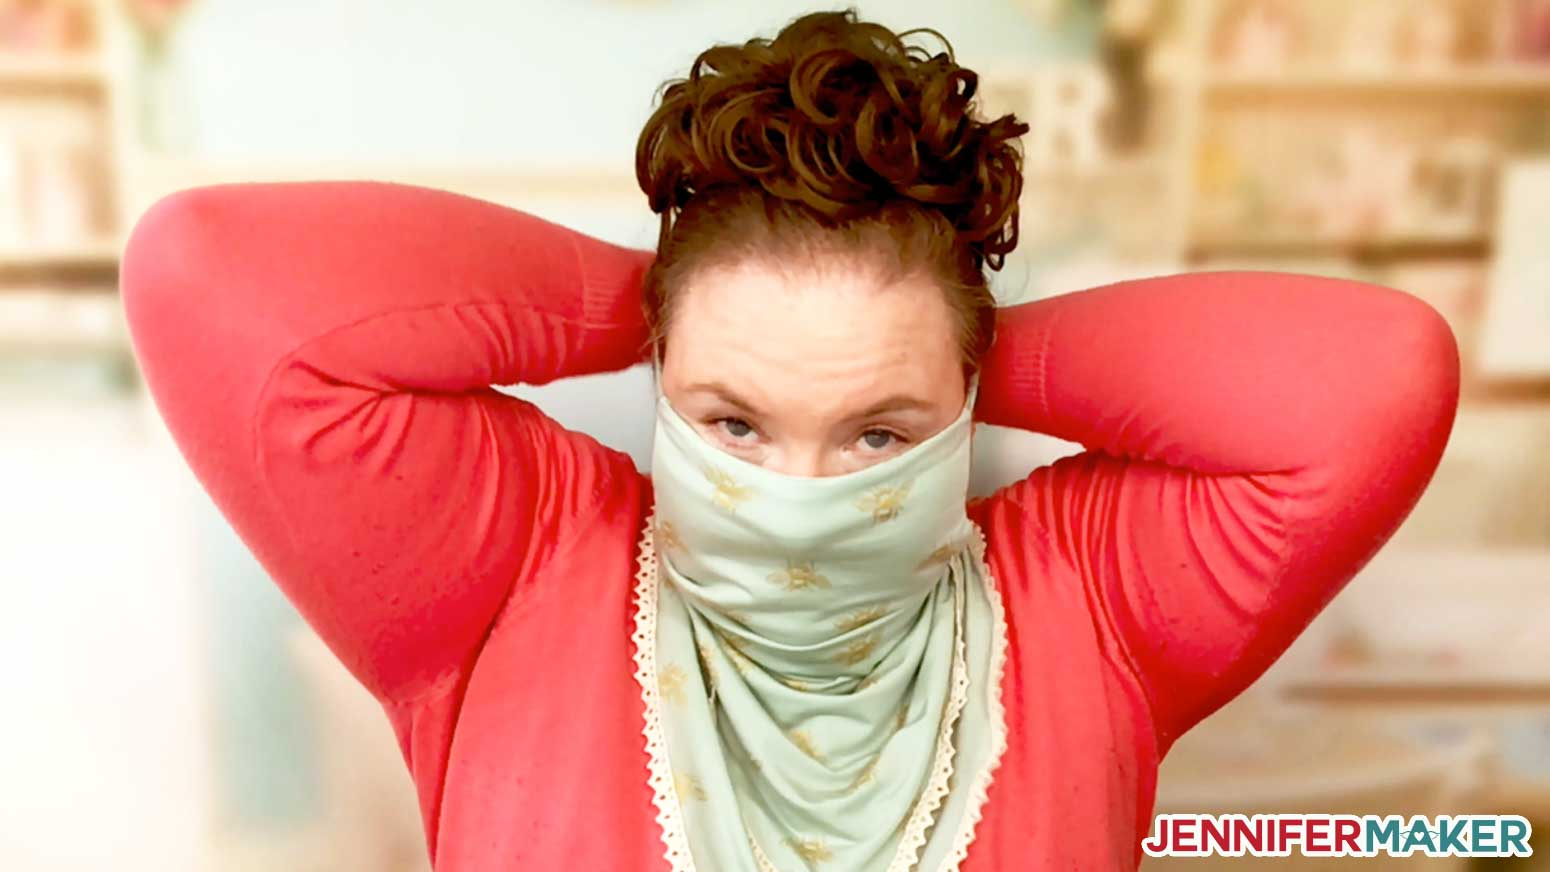 Tying the pretty neck scarf face mask around the neck